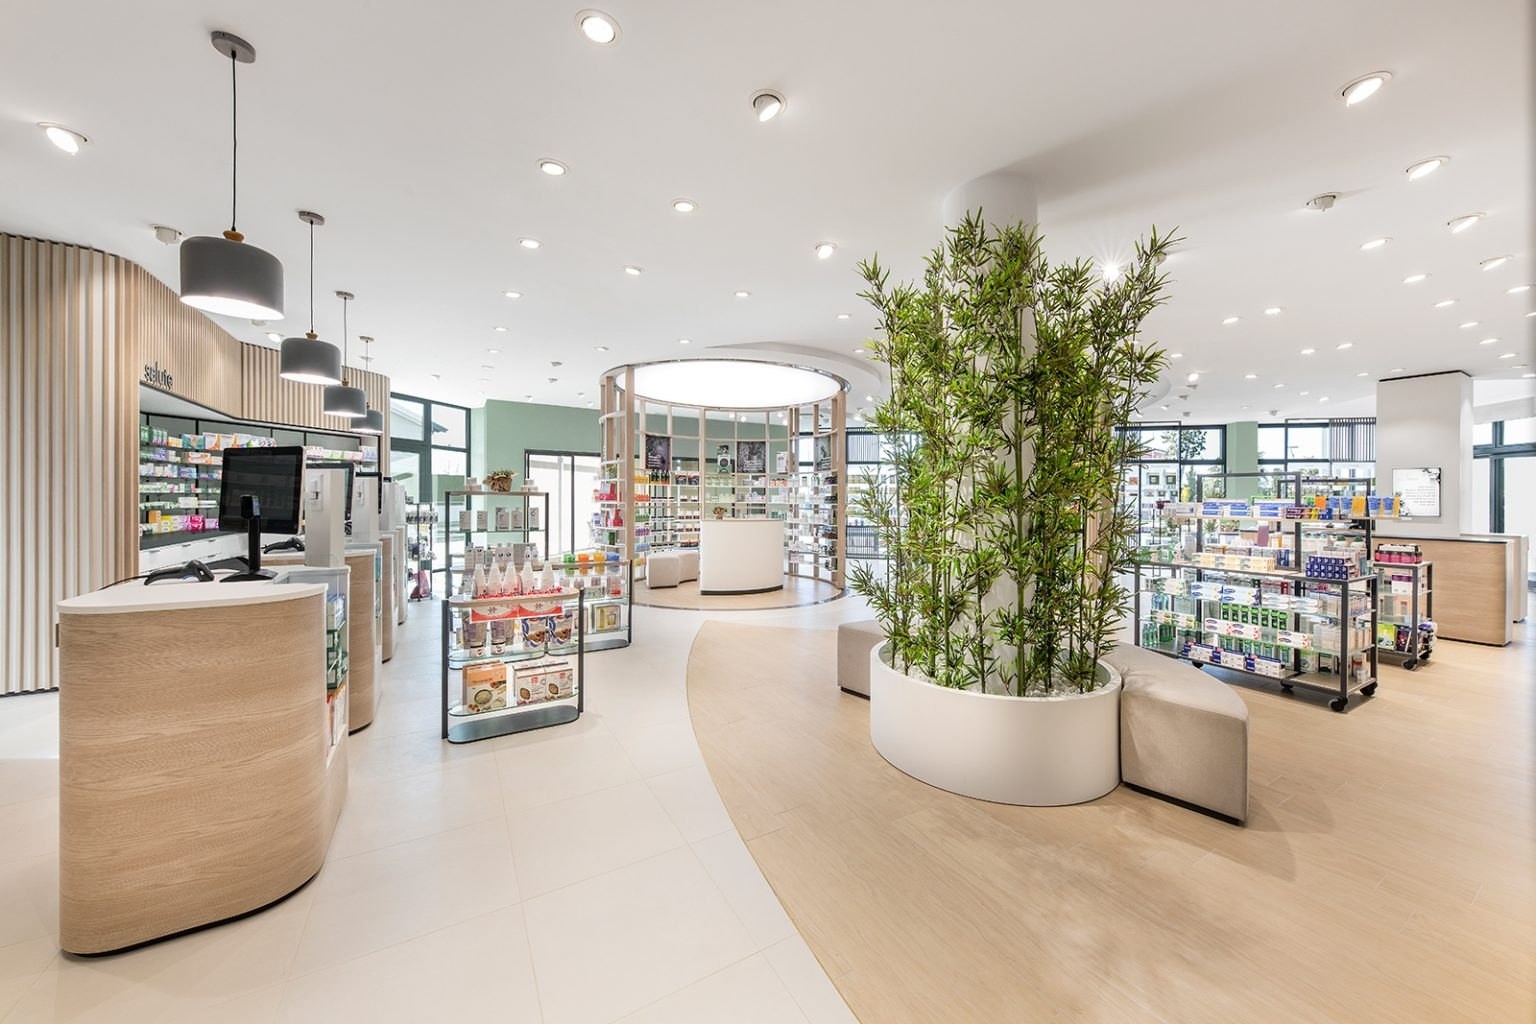 Shopping experience in Farmacia Essenza by Amlab